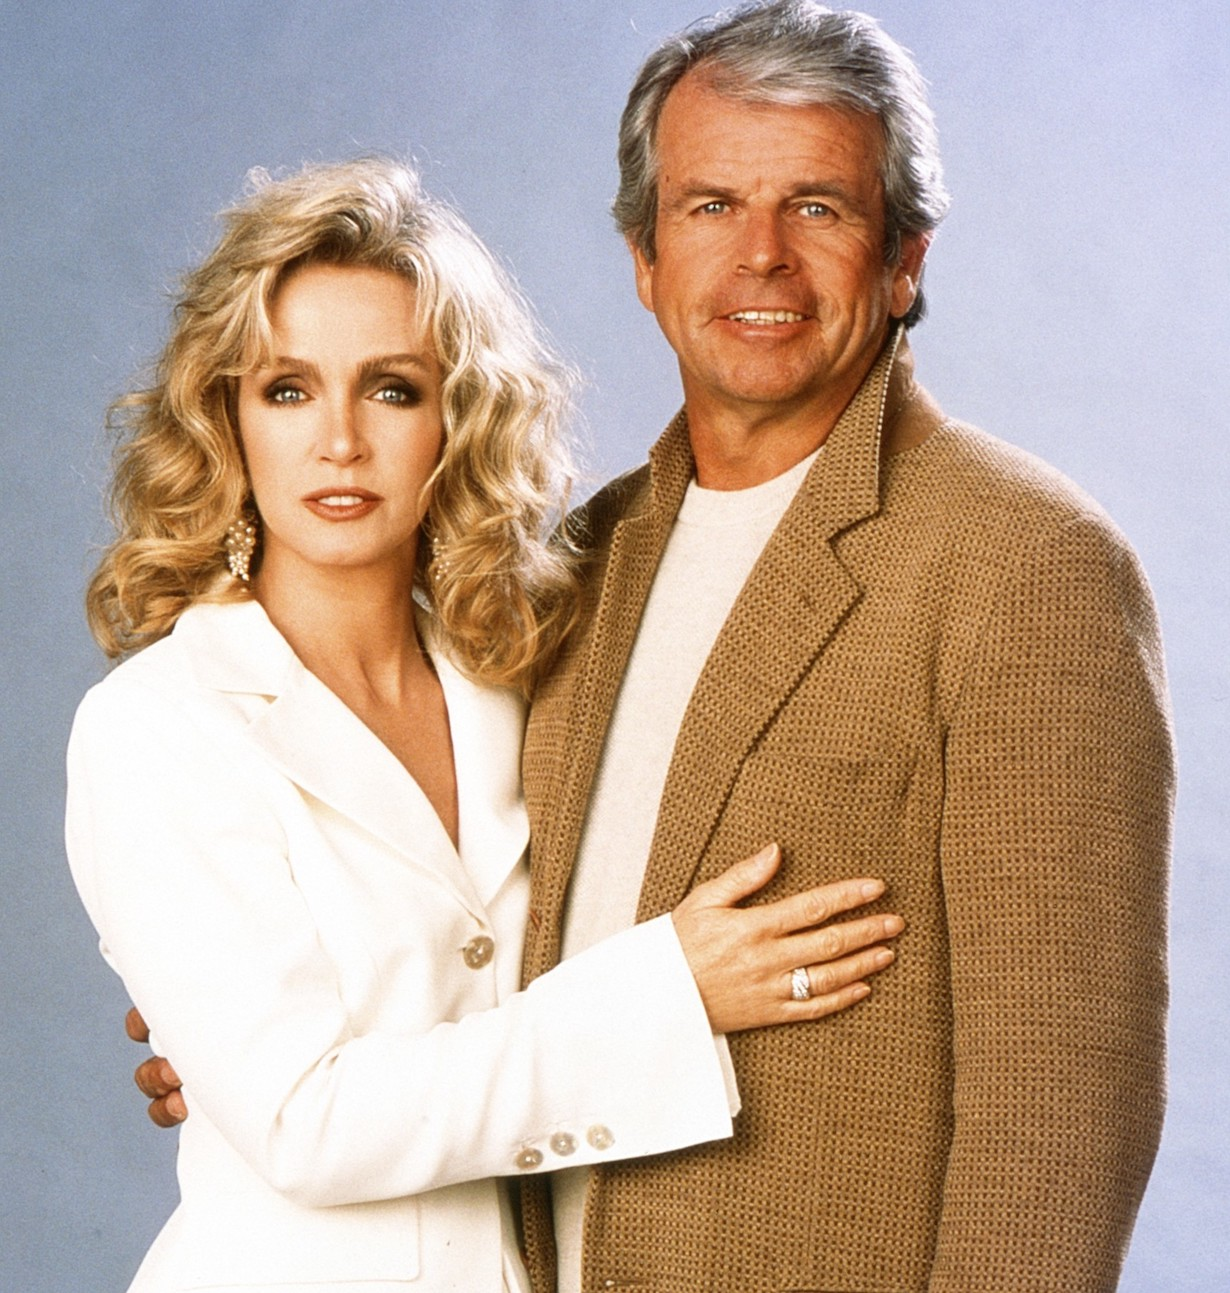 KNOTS LANDING: BACK TO THE CUL-DE-SAC, from left: Donna Mills, William Devane, 1997. ph: Randy Tepper /© CBS /Courtesy Everett Collection